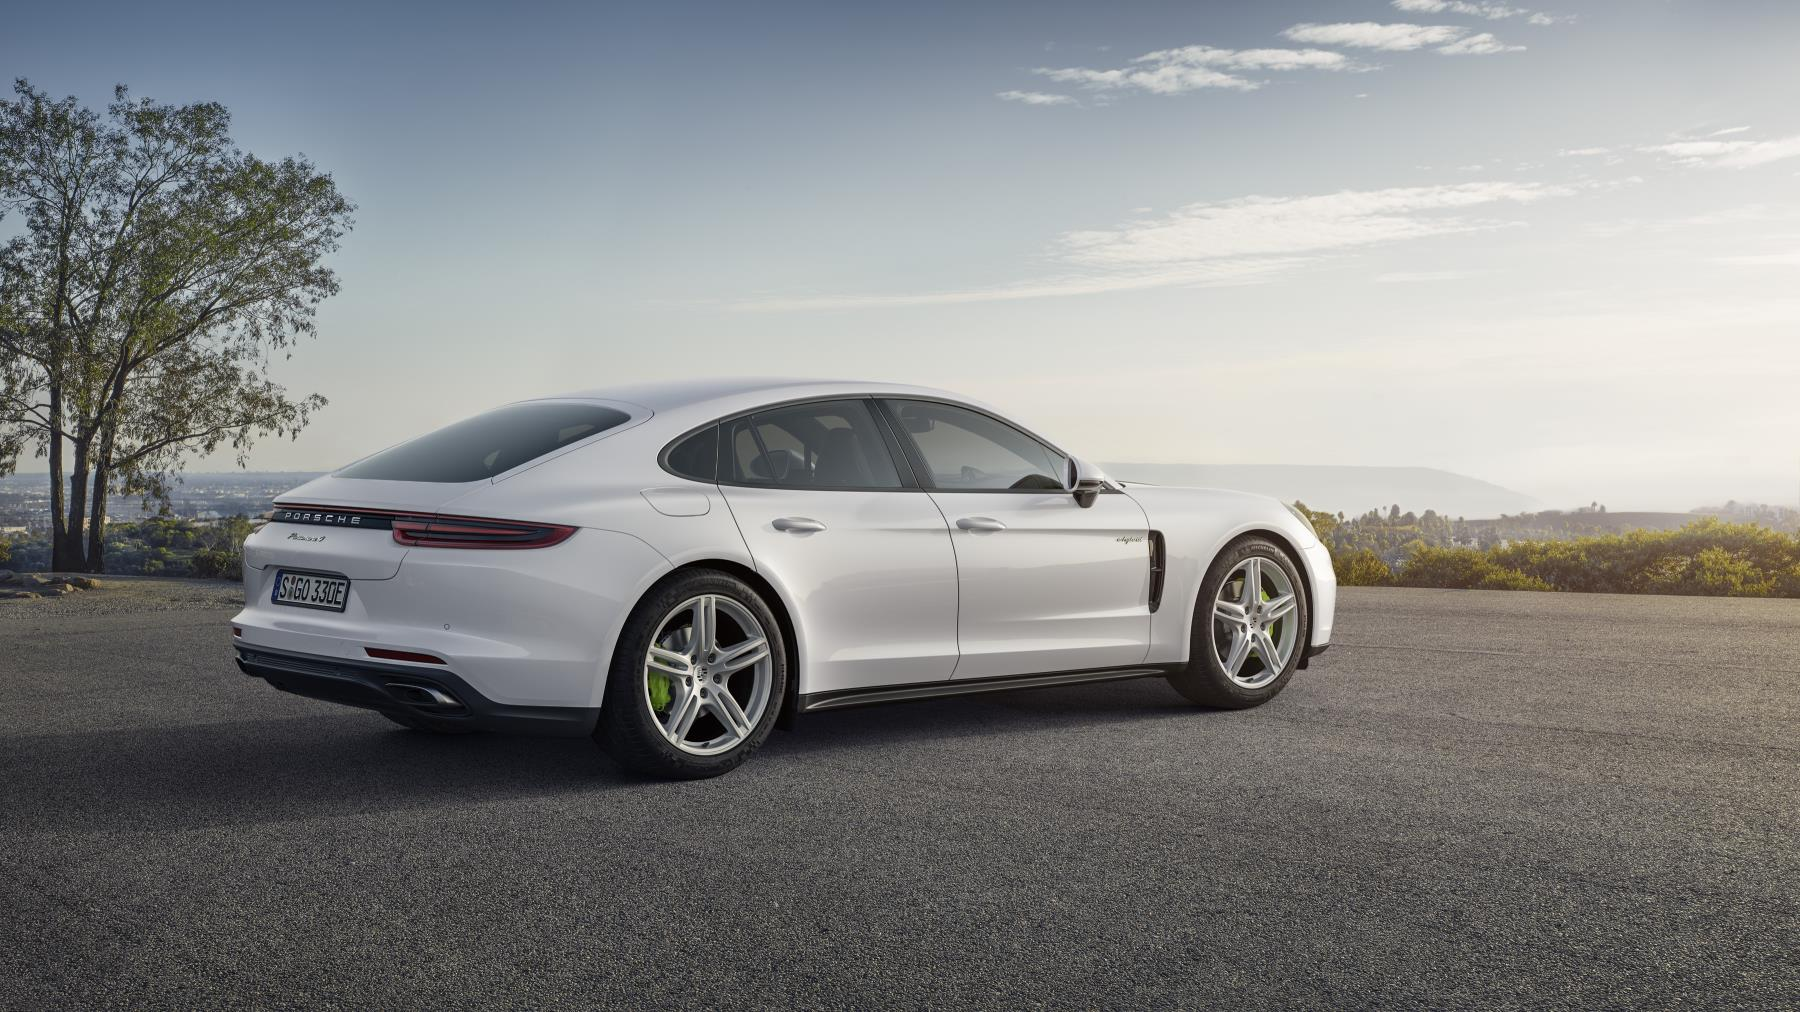 2018 Porsche Panamera 4 E Hybrid Unveiled Uses 2 9l Twin Turbo Autoevolution